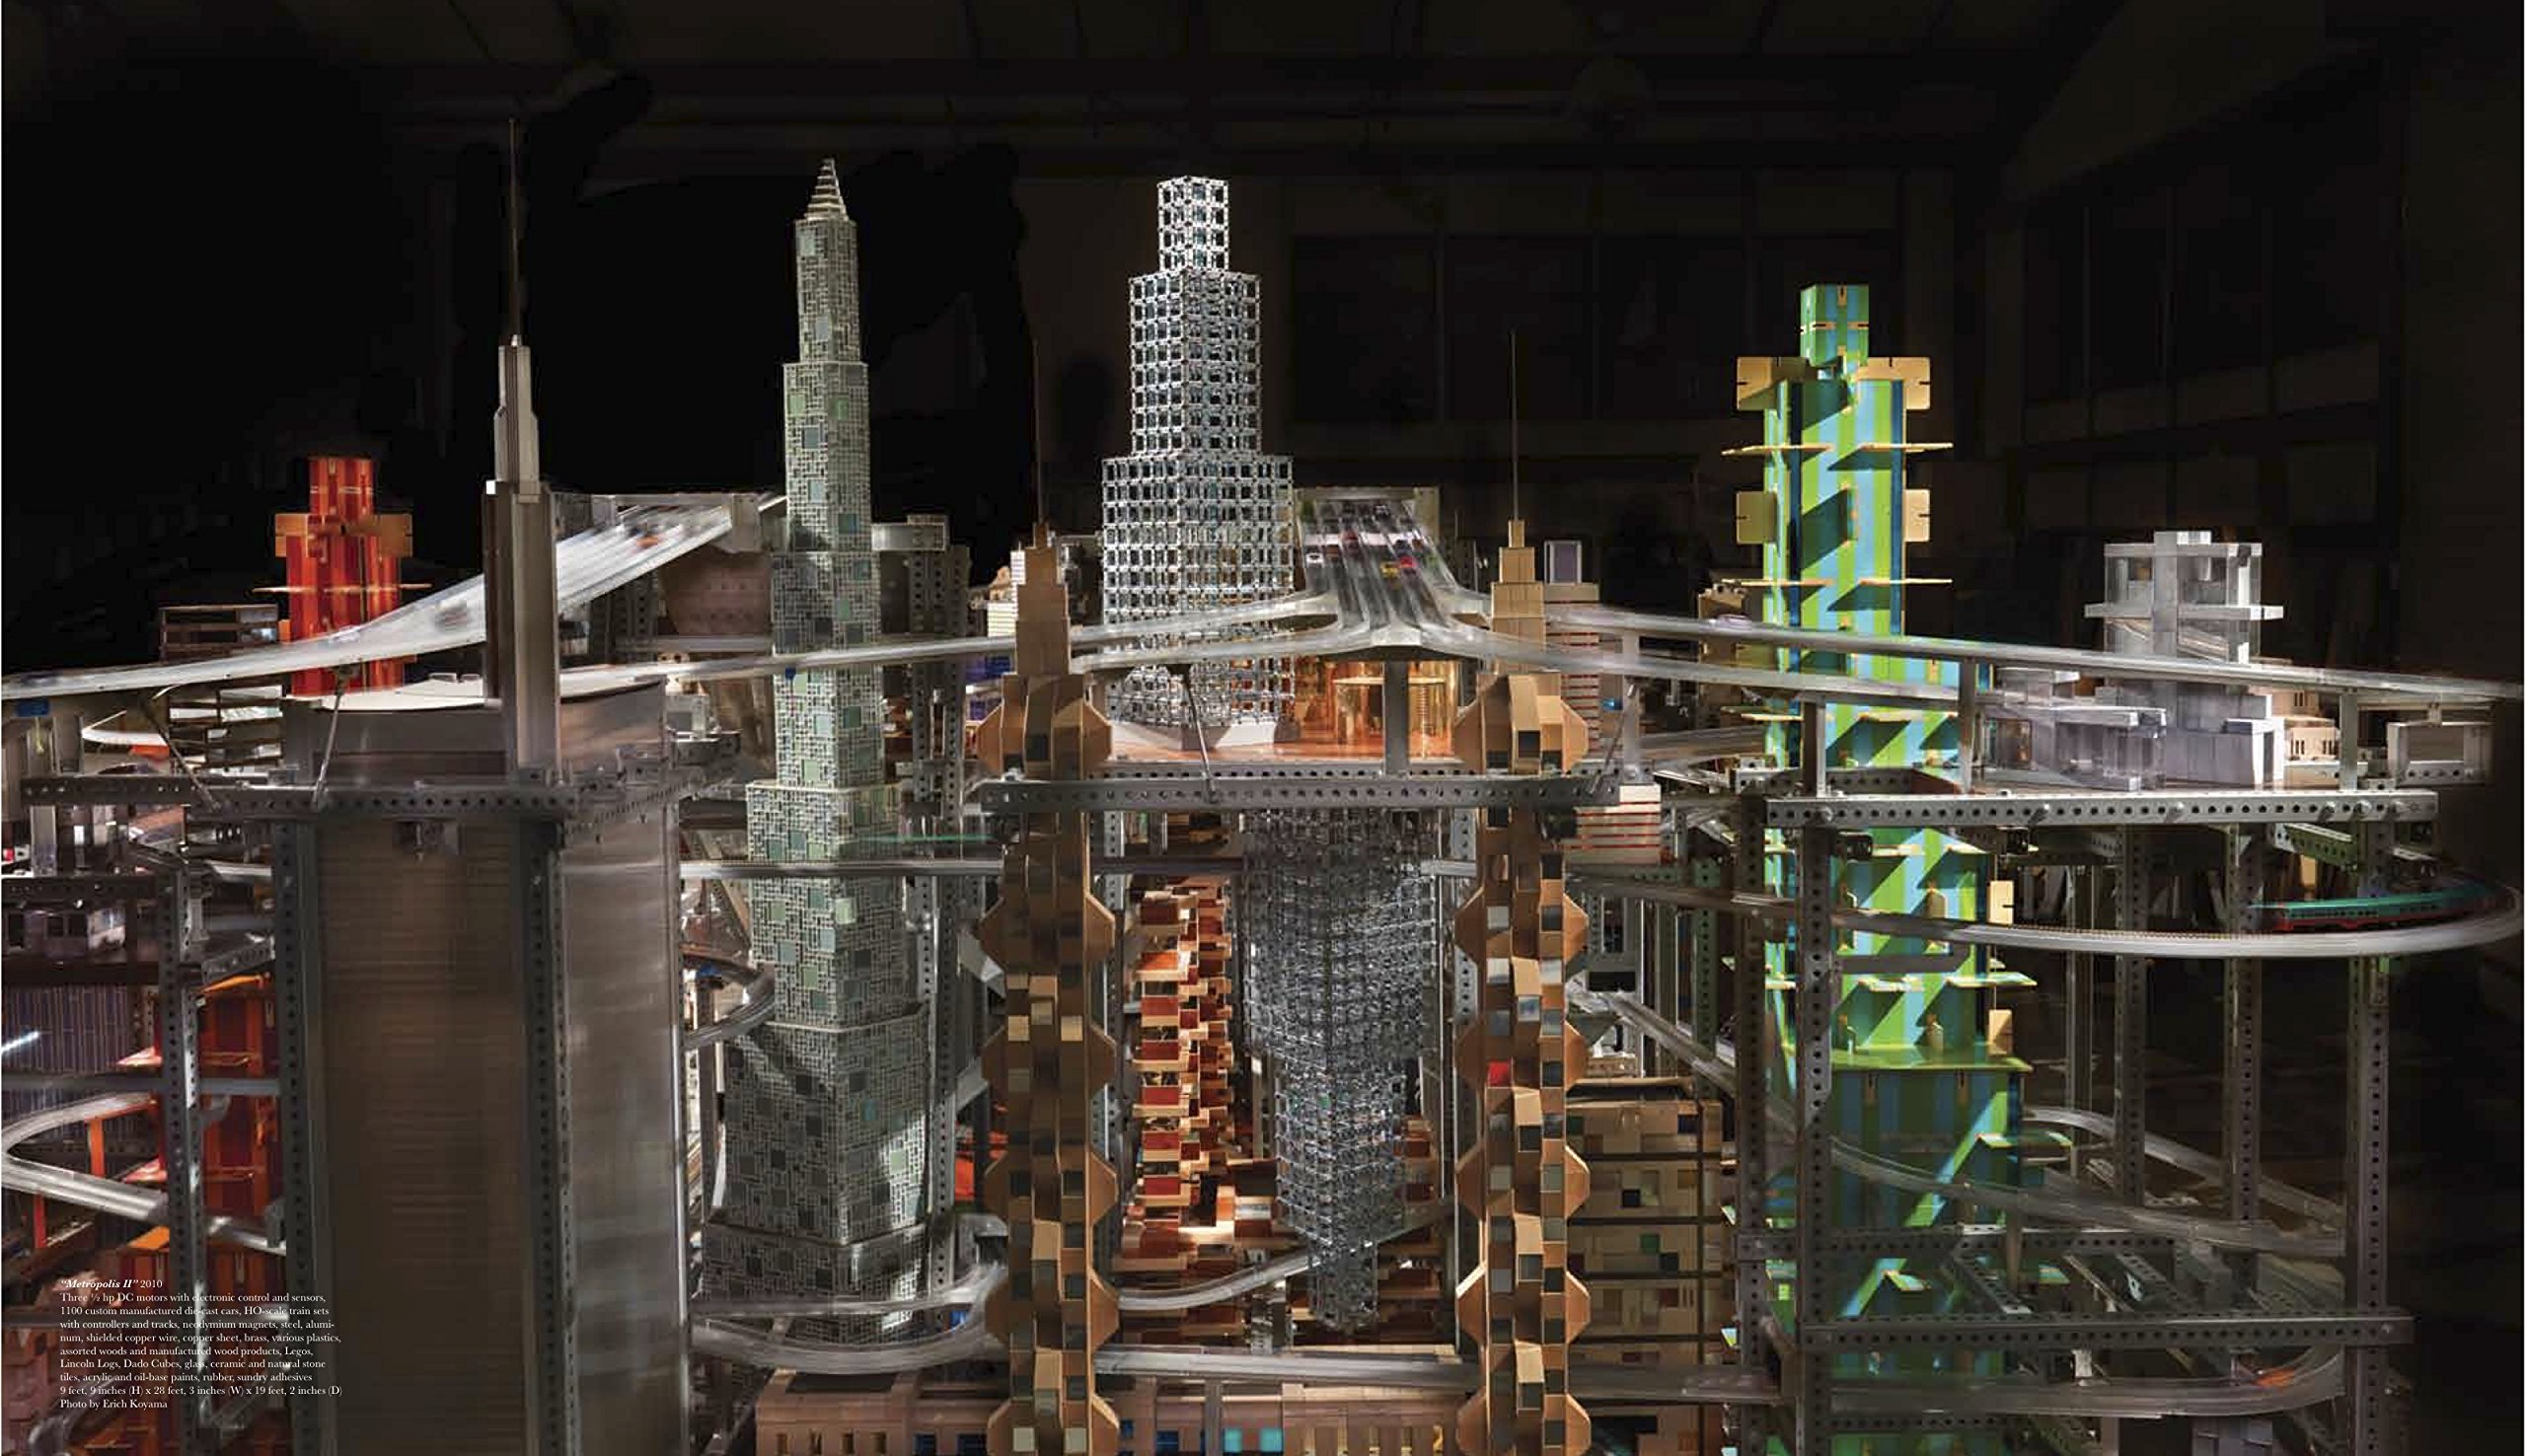 Chris Burden, Metropolis II, 2010.